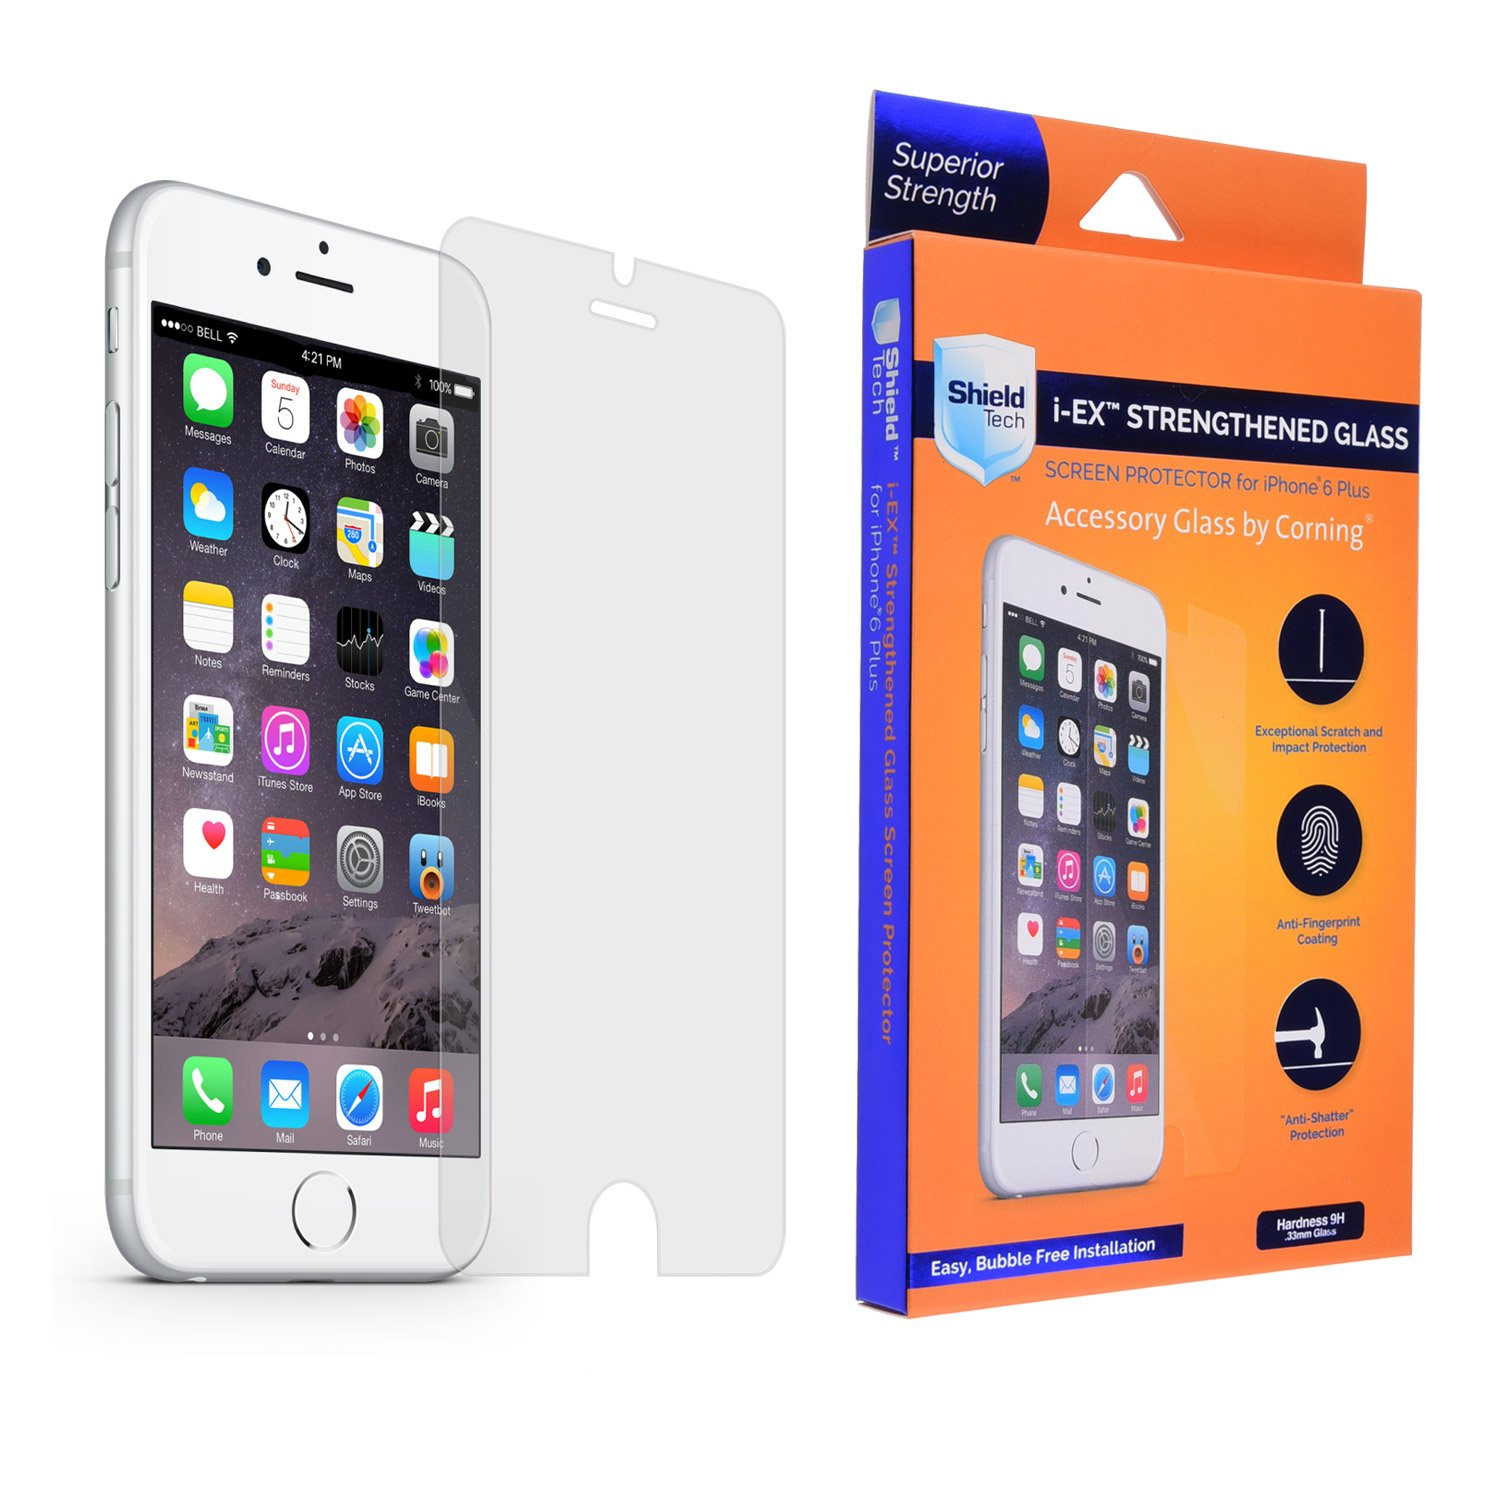 iPhone 6S Plus / 6 Plus Glass Screen Protector, Real Gorilla Glass, Super Strong Premium Quality Glass by Corning, Crystal Clear, Hardness 9H, Thickness 0.33 mm, Complete Kit, Easy to Apply